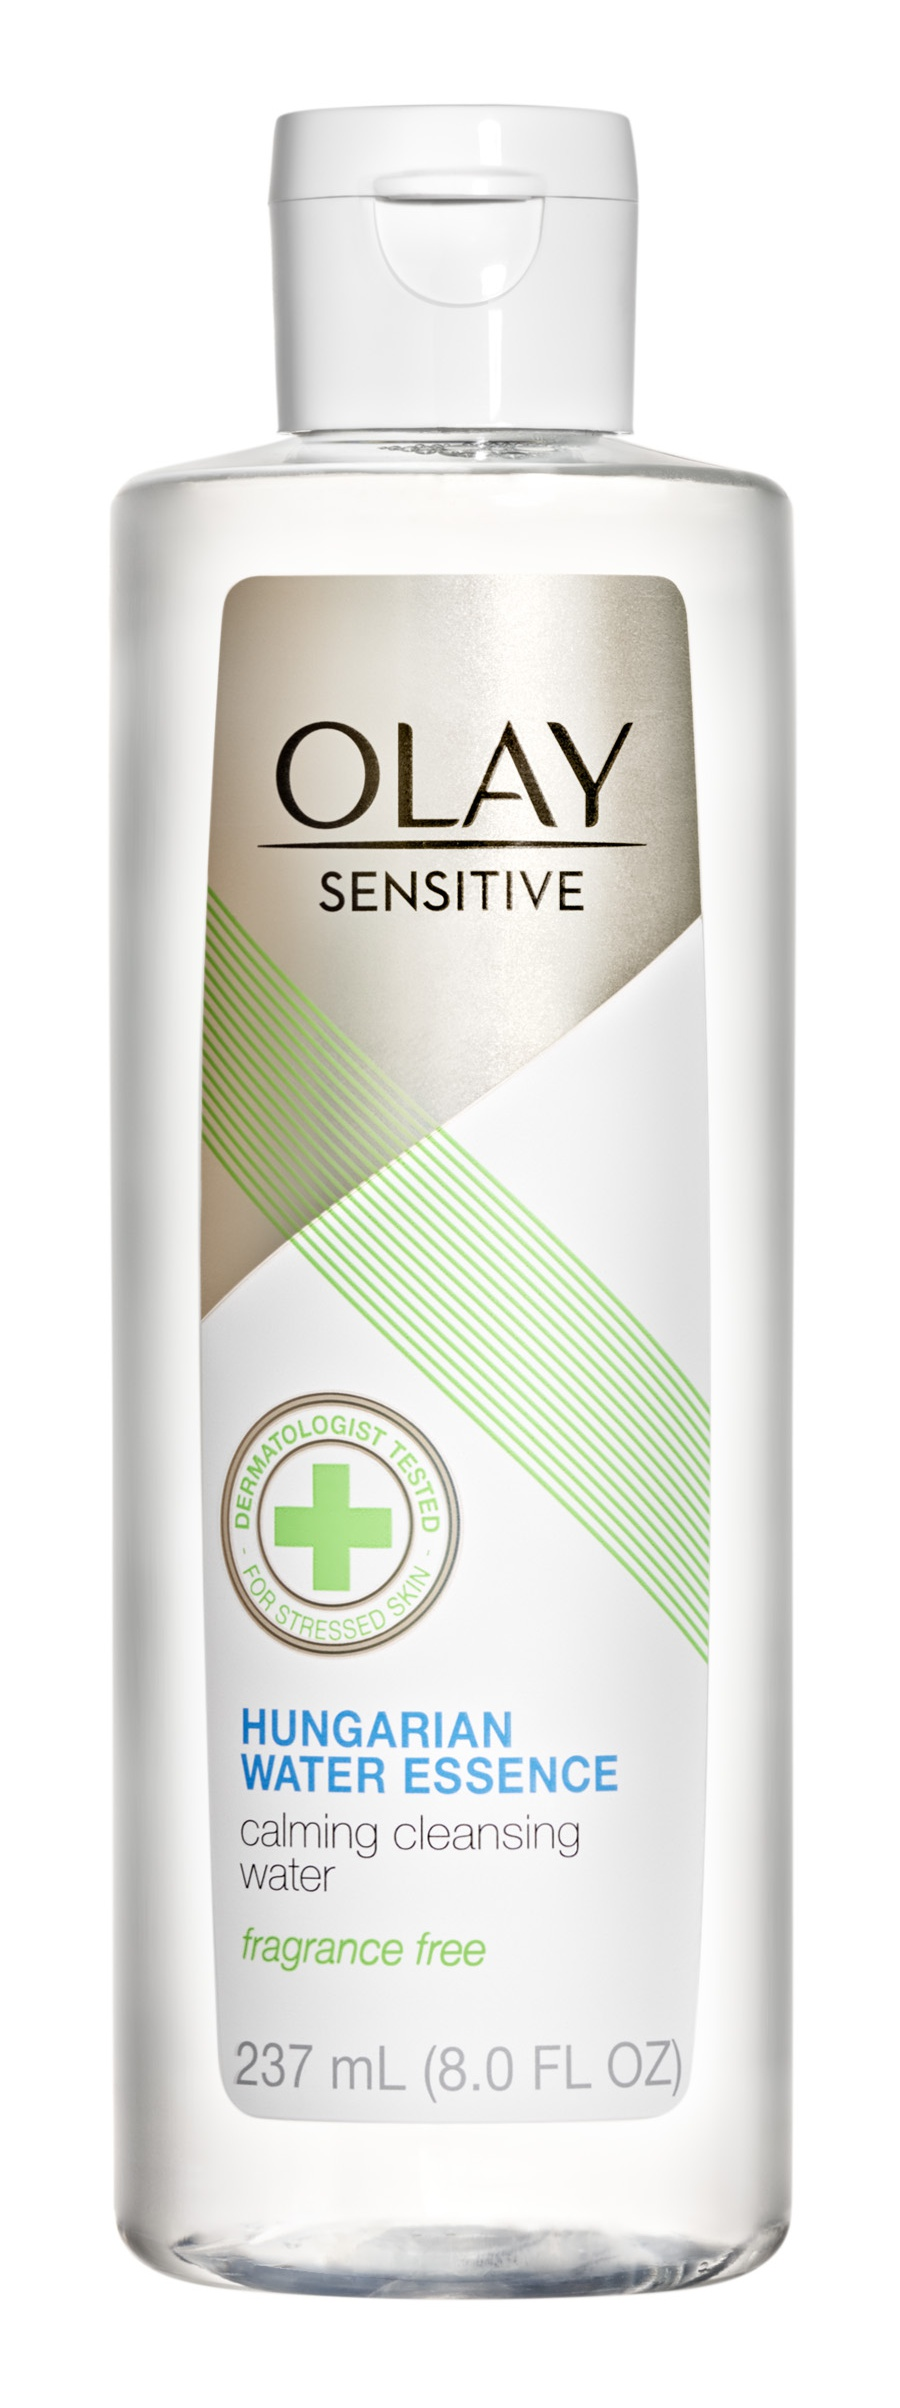 Olay Hungarian Water Essence Calming Cleansing Water